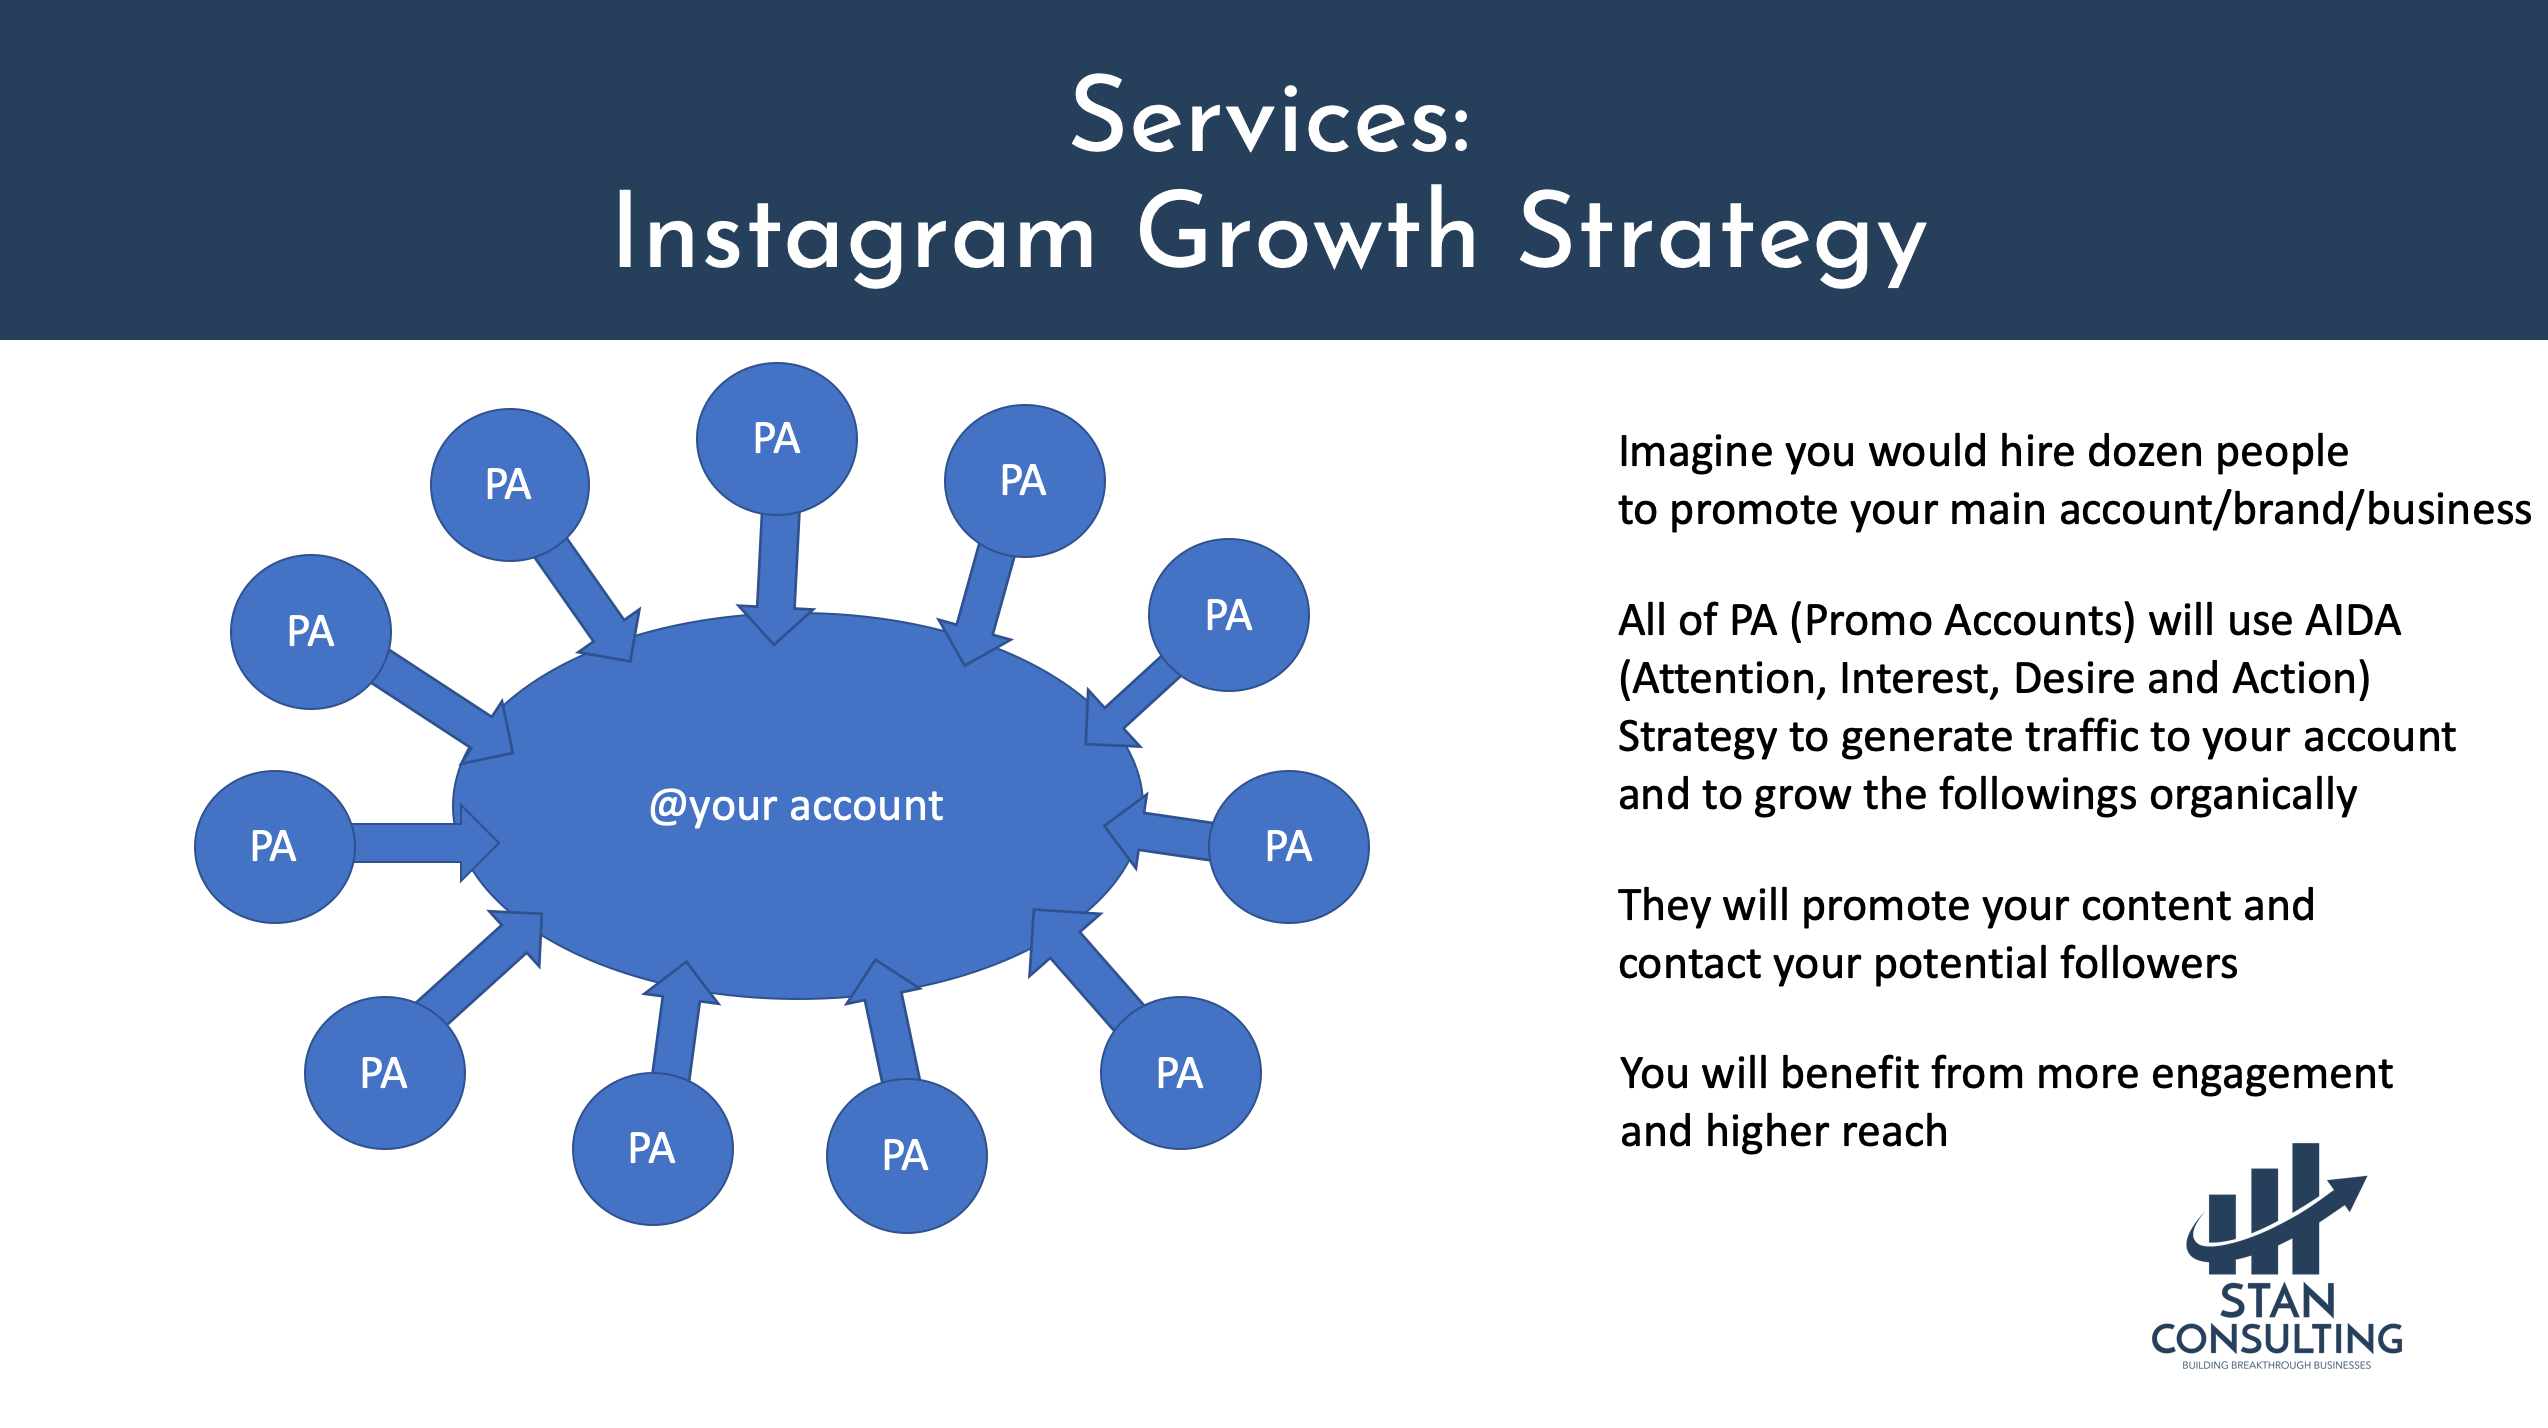 Instagram growth services by stan consulting www.stanconsultingllc.com how to get 10k followers fast